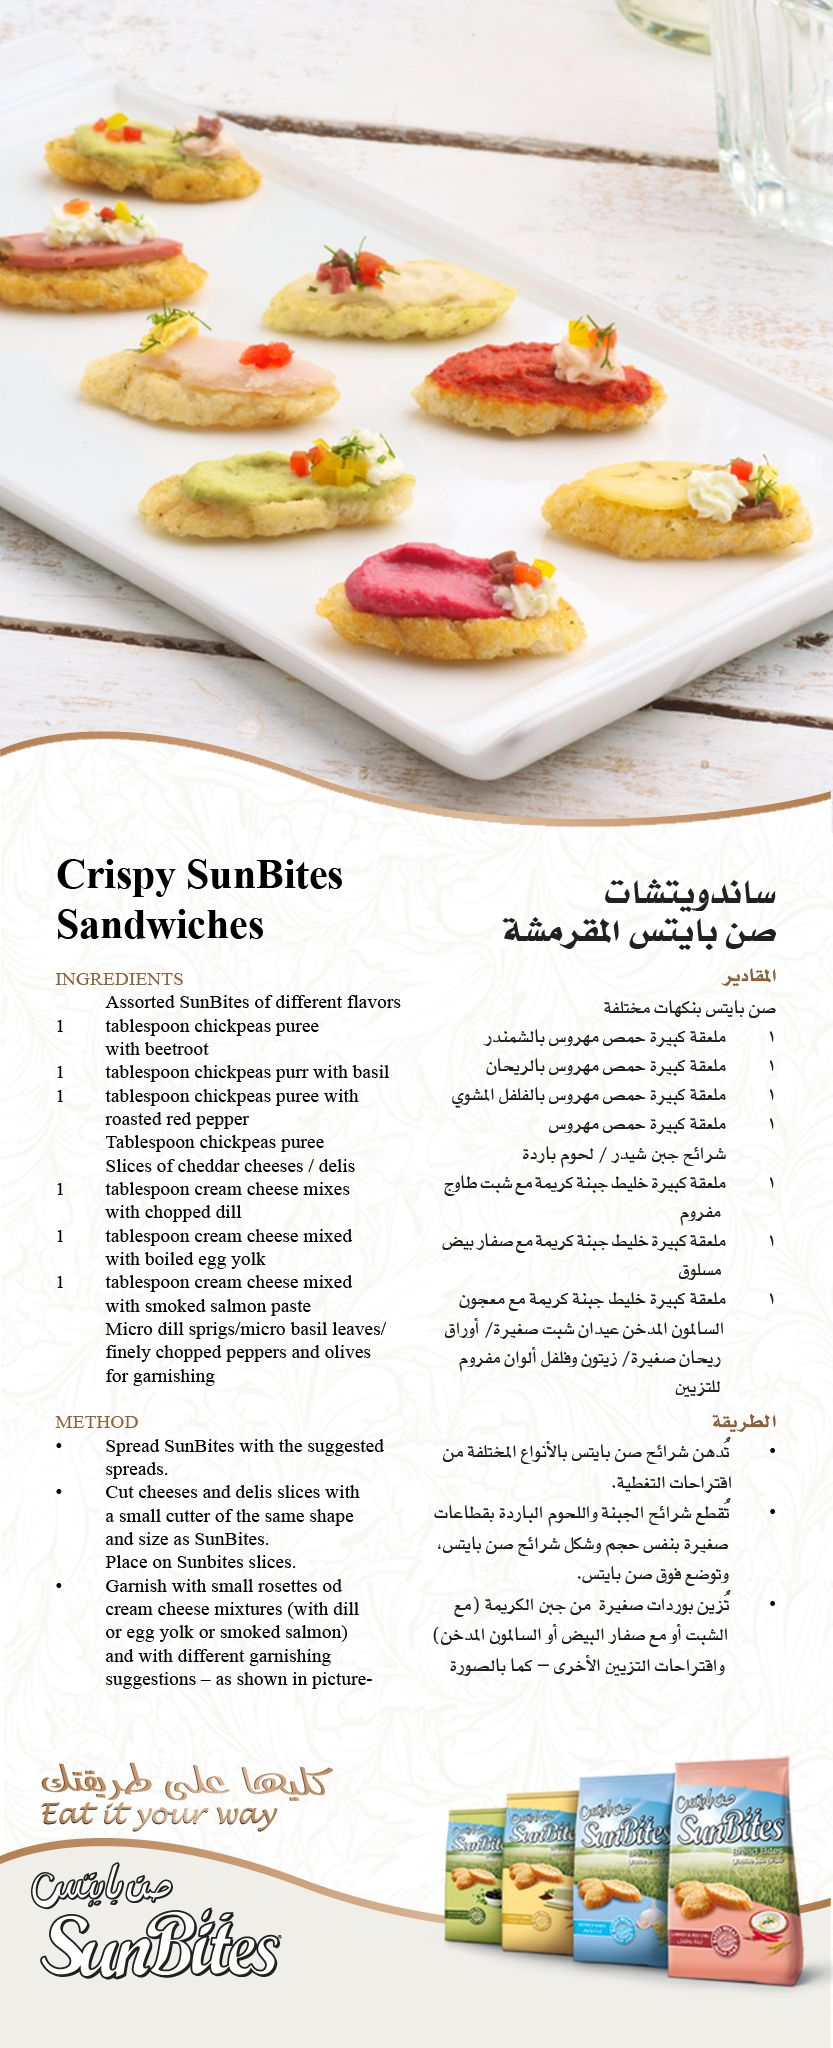 Sunbites Arabia Arabic Food Recipes Food